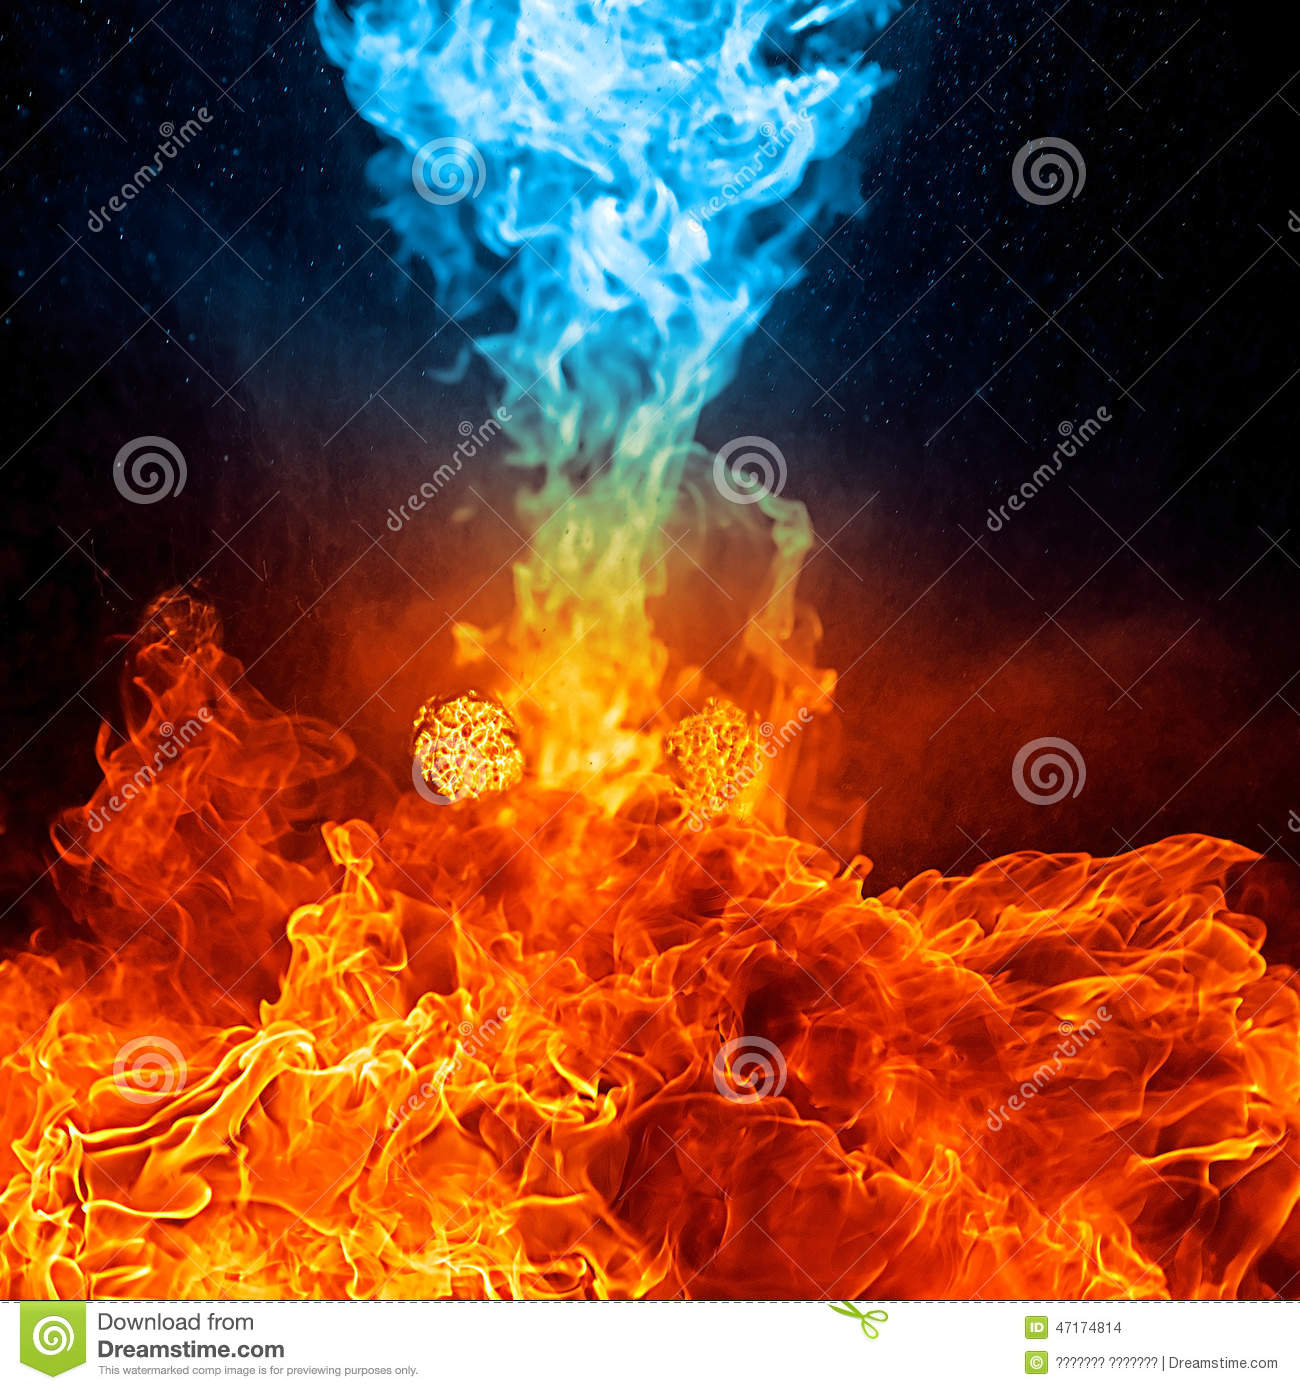 1300x1390 - Red and Blue Fire 35